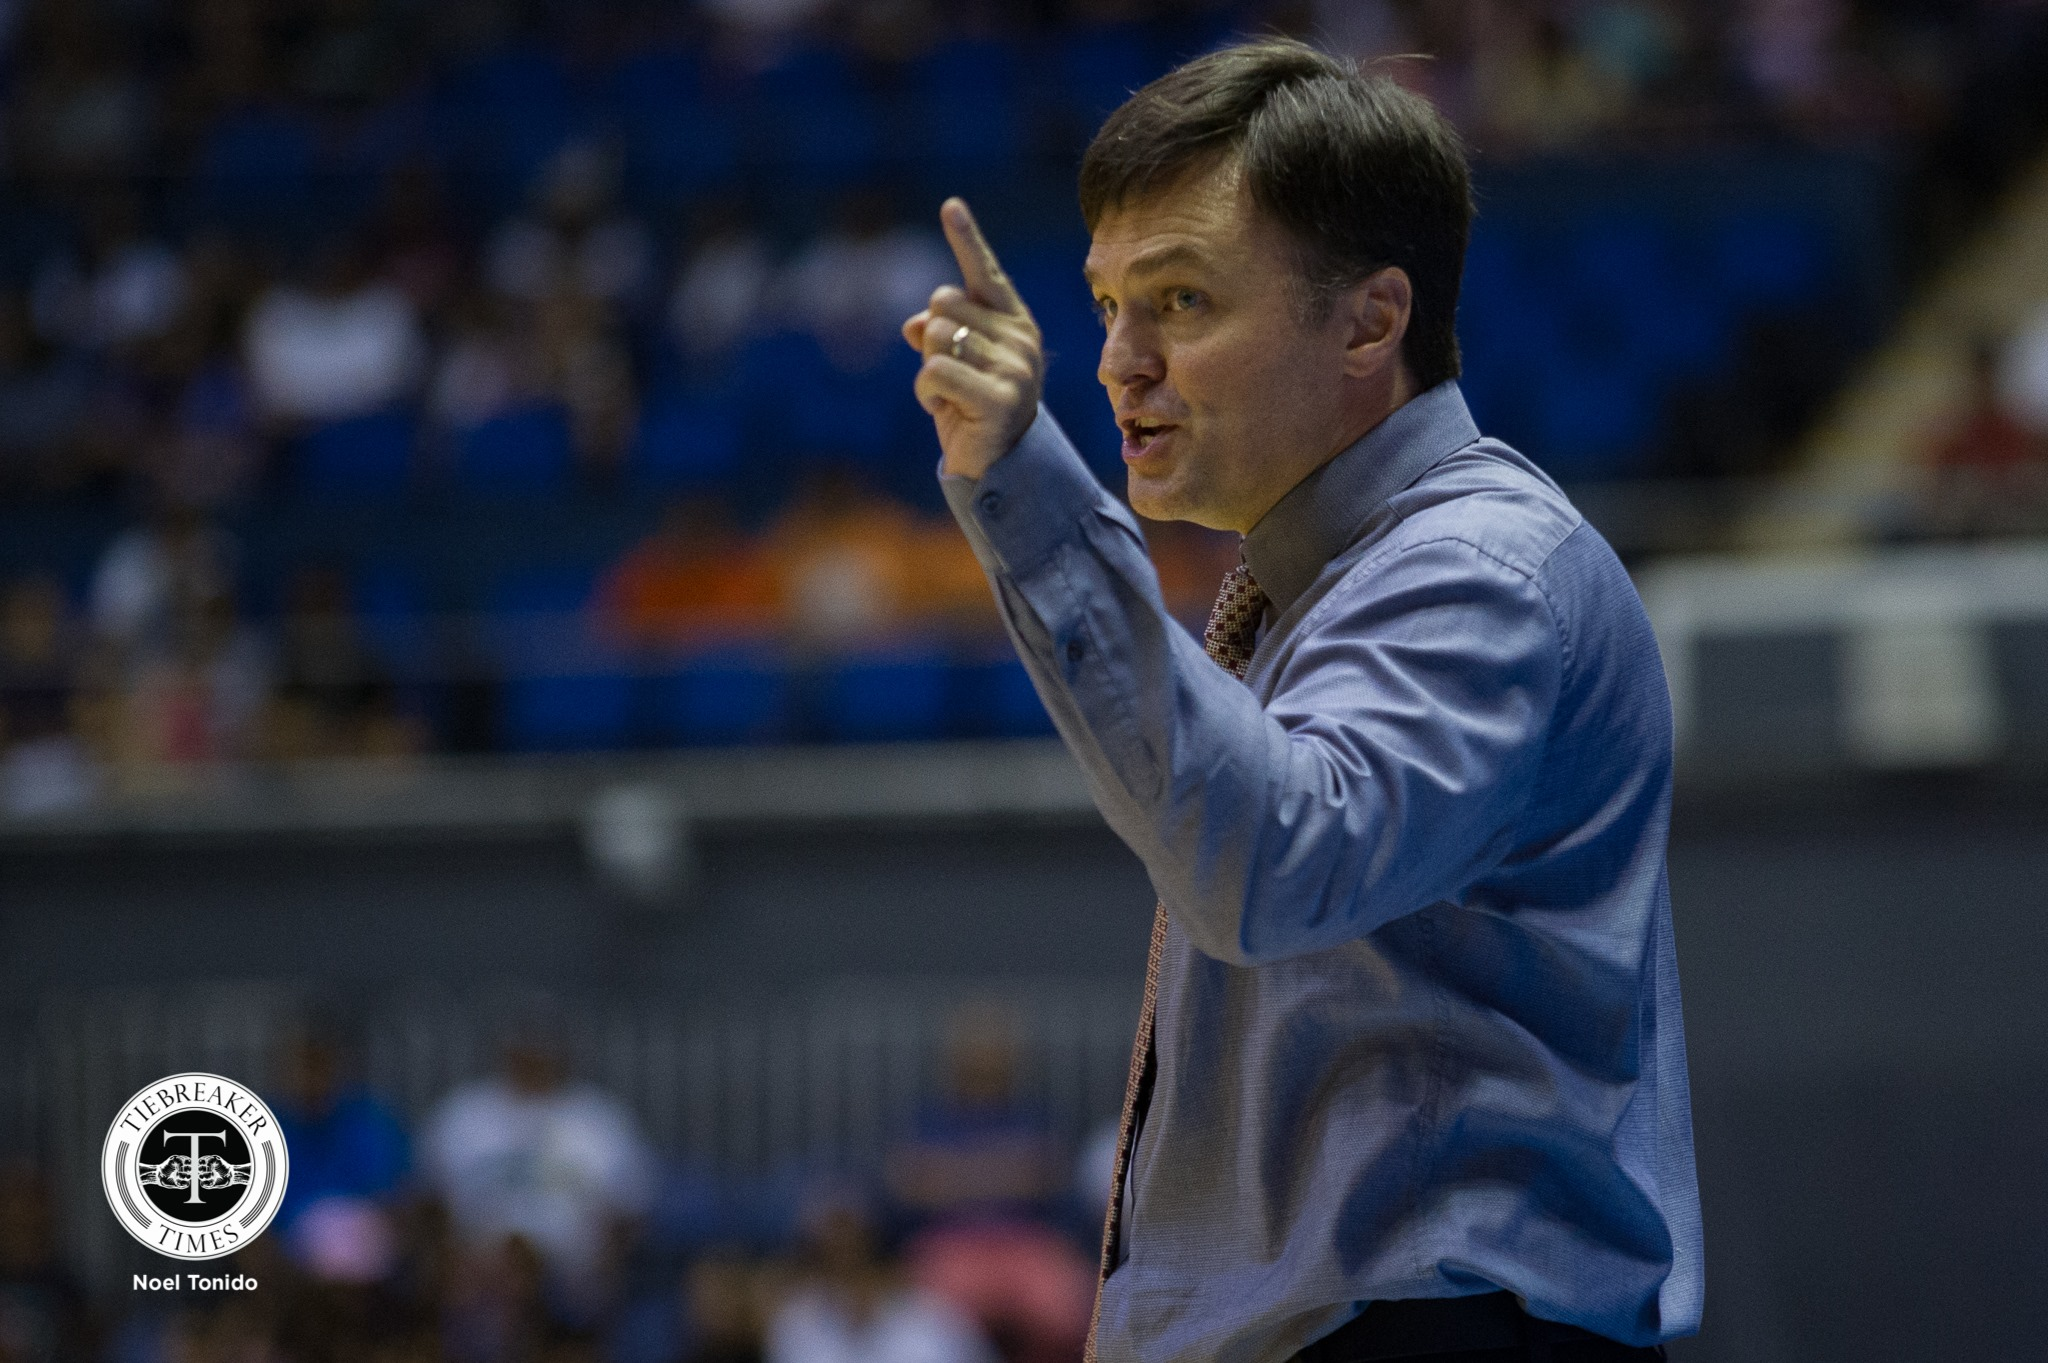 Tiebreaker Times Alaska's Alex Compton left frustrated after Game 2: 'They karate chop or trip our ball handler' Basketball News PBA  PBA Season 43 Alex Compton Alaska Aces 2018 PBA Governors Cup